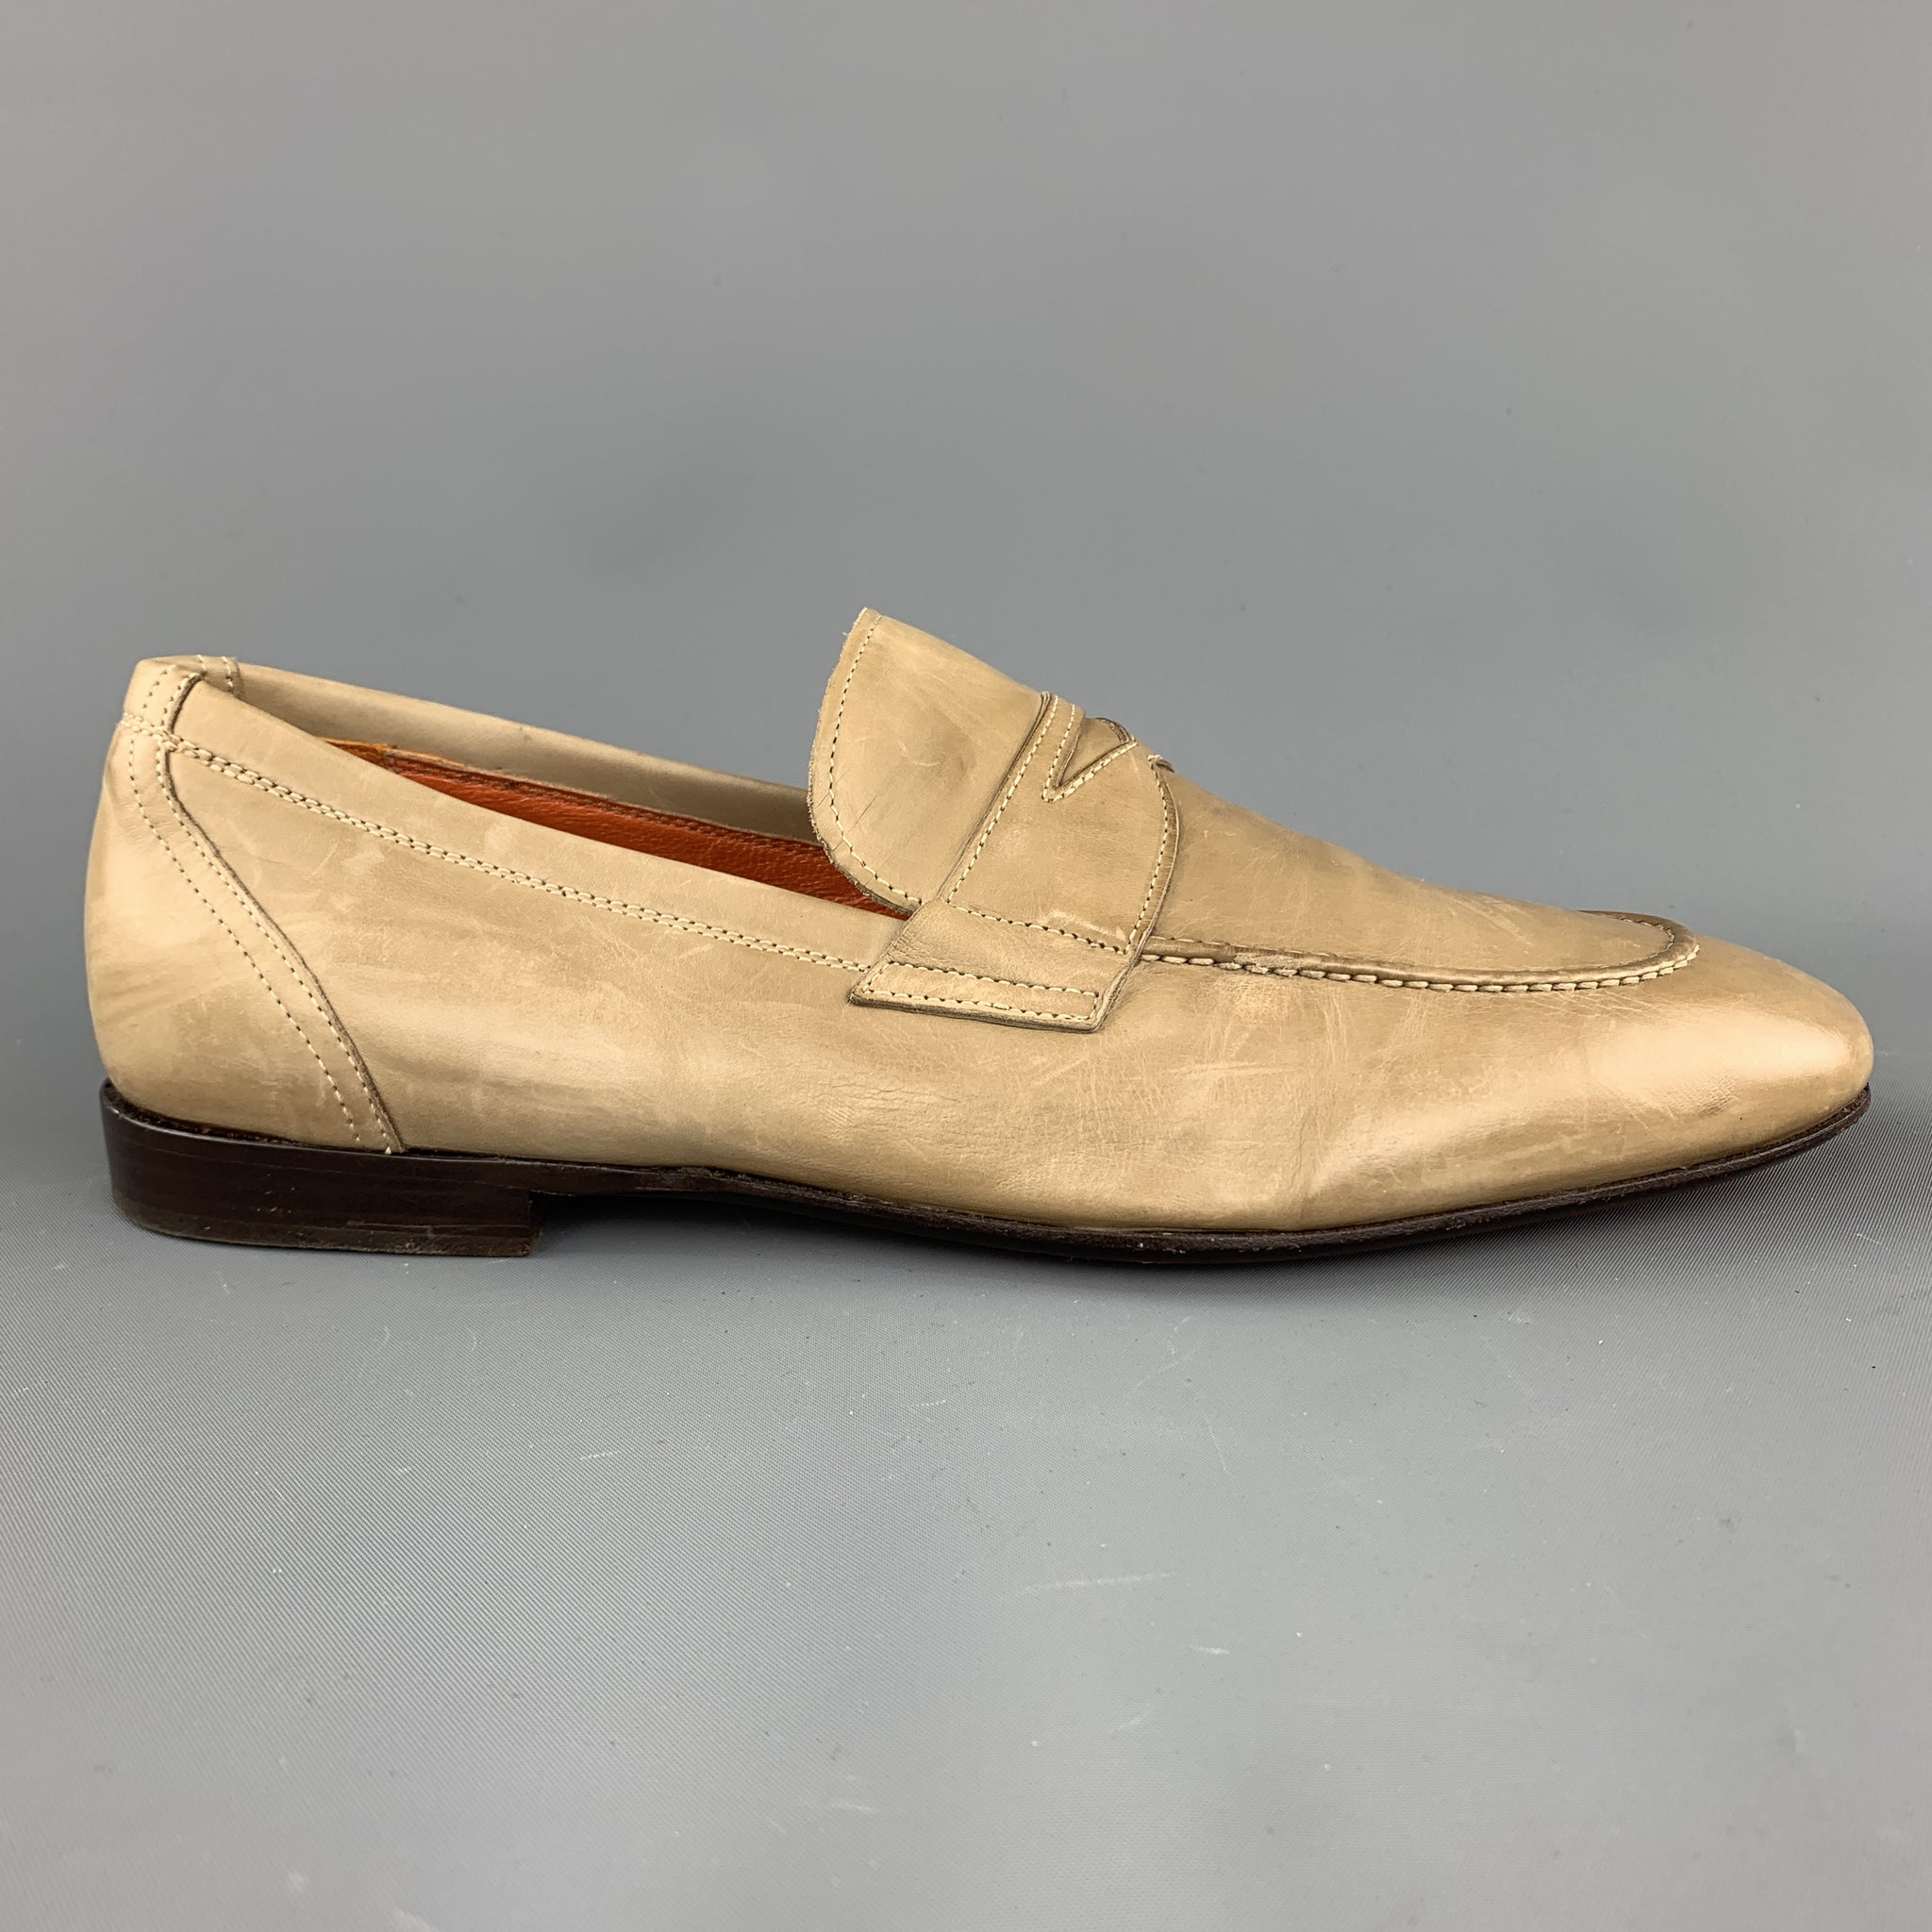 19a1cbbc4ee Sui Generis Designer Consignment. Home  MAURO VOLPONI Size 8 Taupe Solid  Leather Slip On Loafers. Click to Zoom